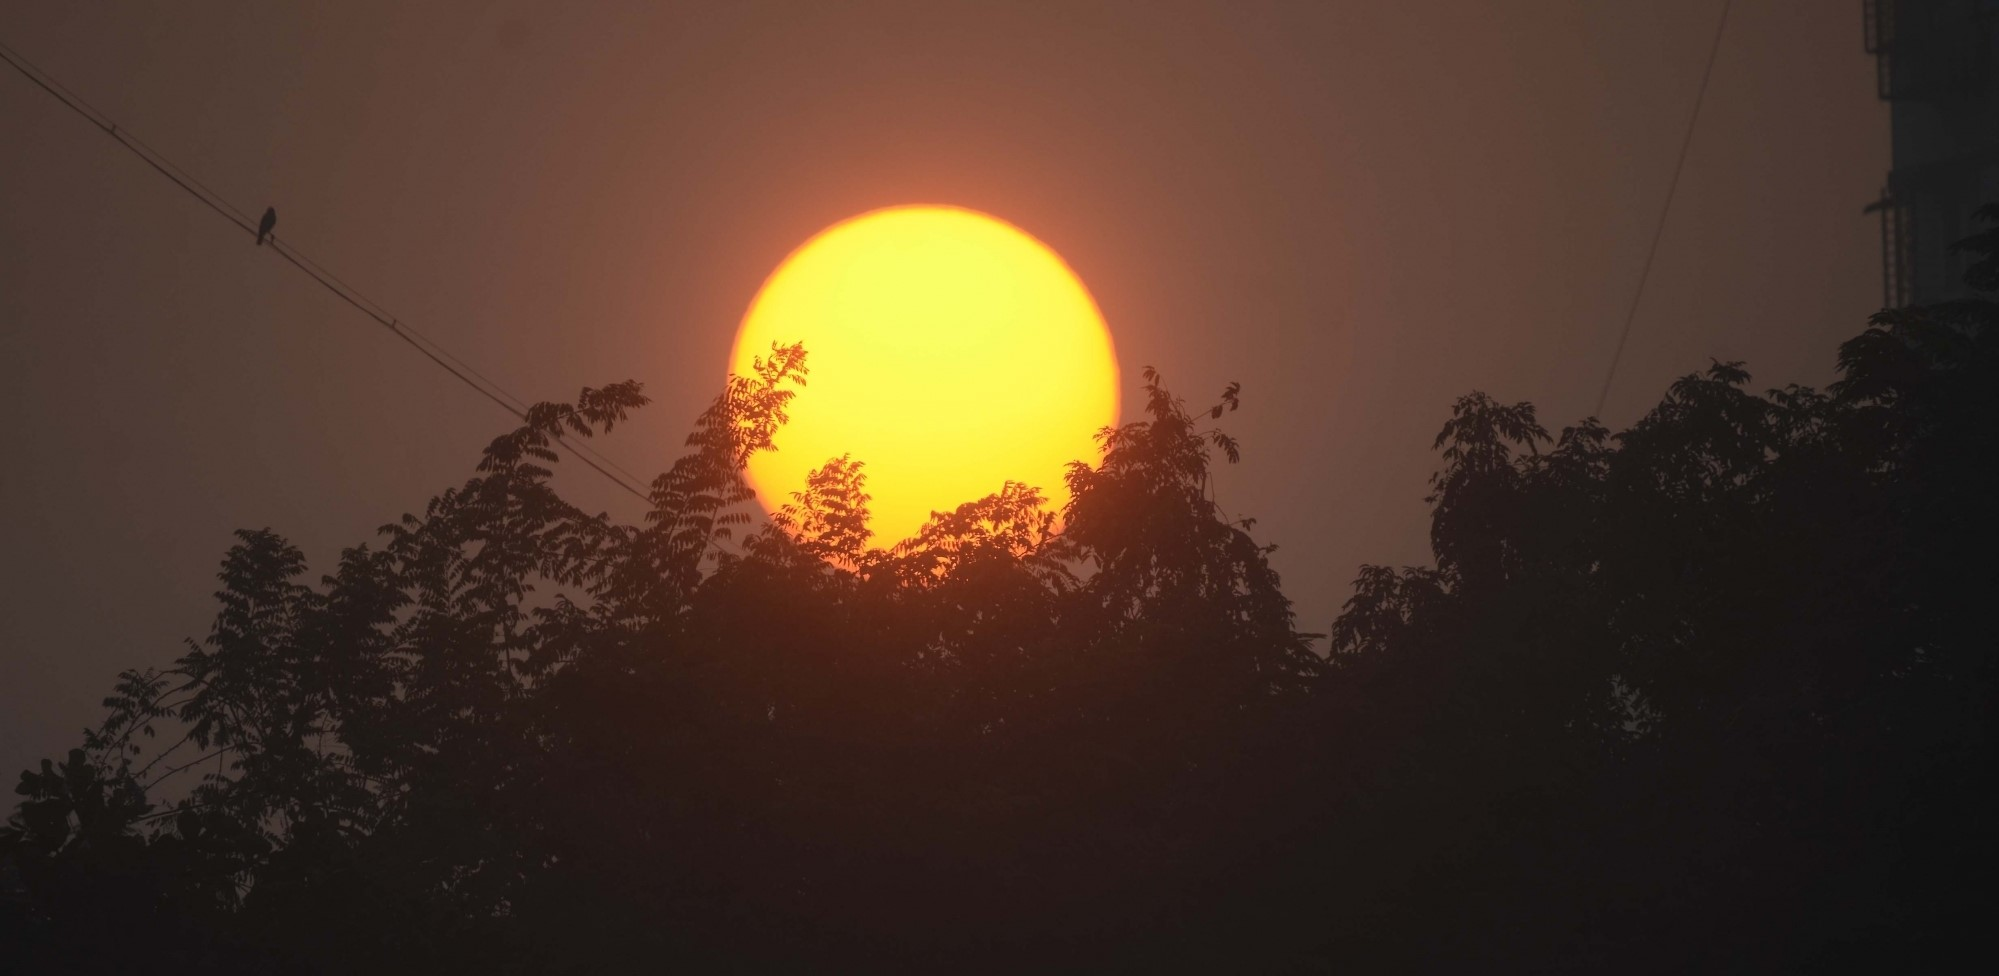 Weather mostly dry in UP; Etawah hottest at 44.8 deg C